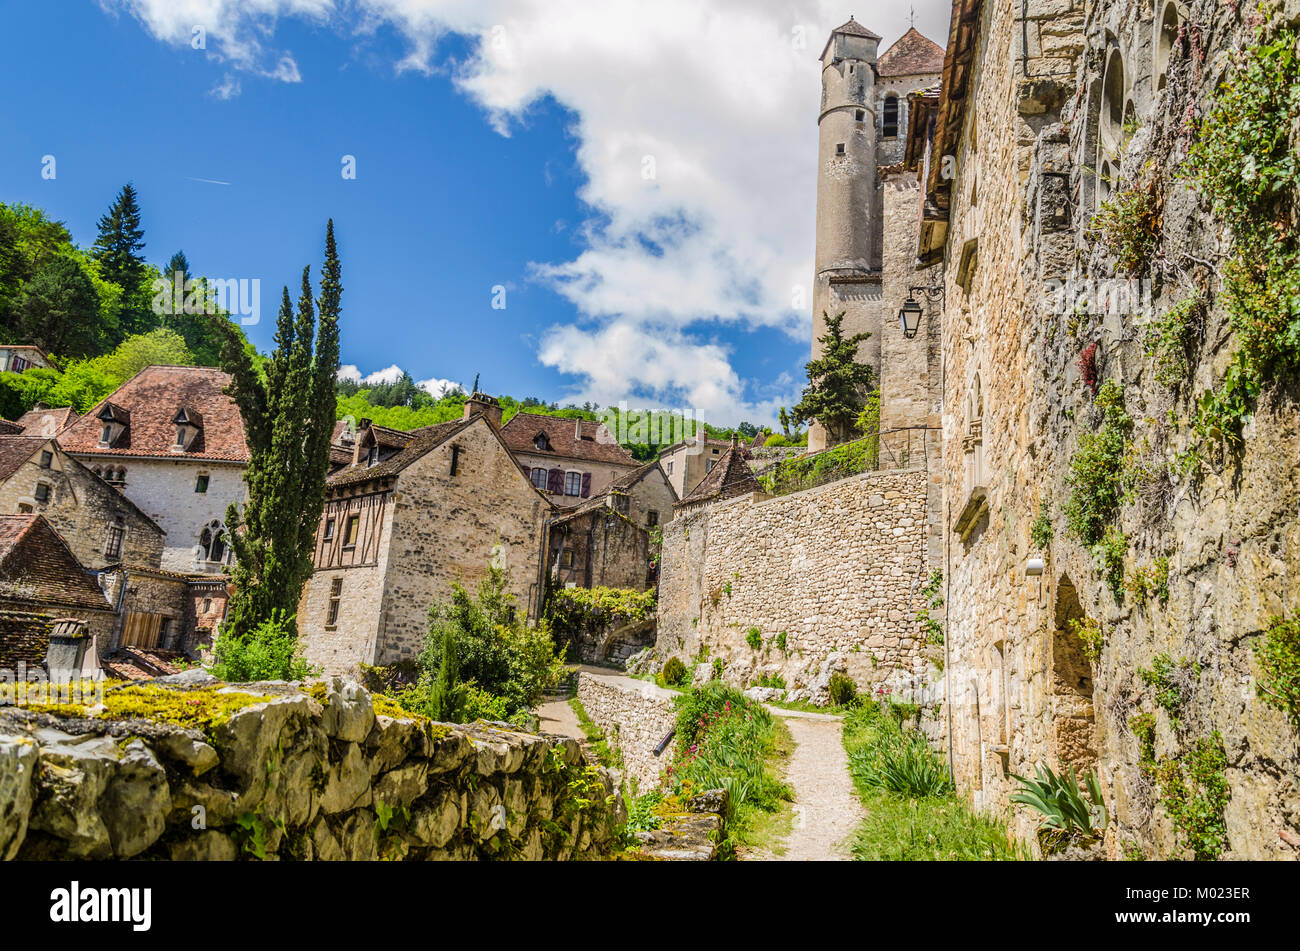 In the department of Lot and in the French commune of midi pyrenees we find the village of Saint cirq Lapopie with - Stock Image